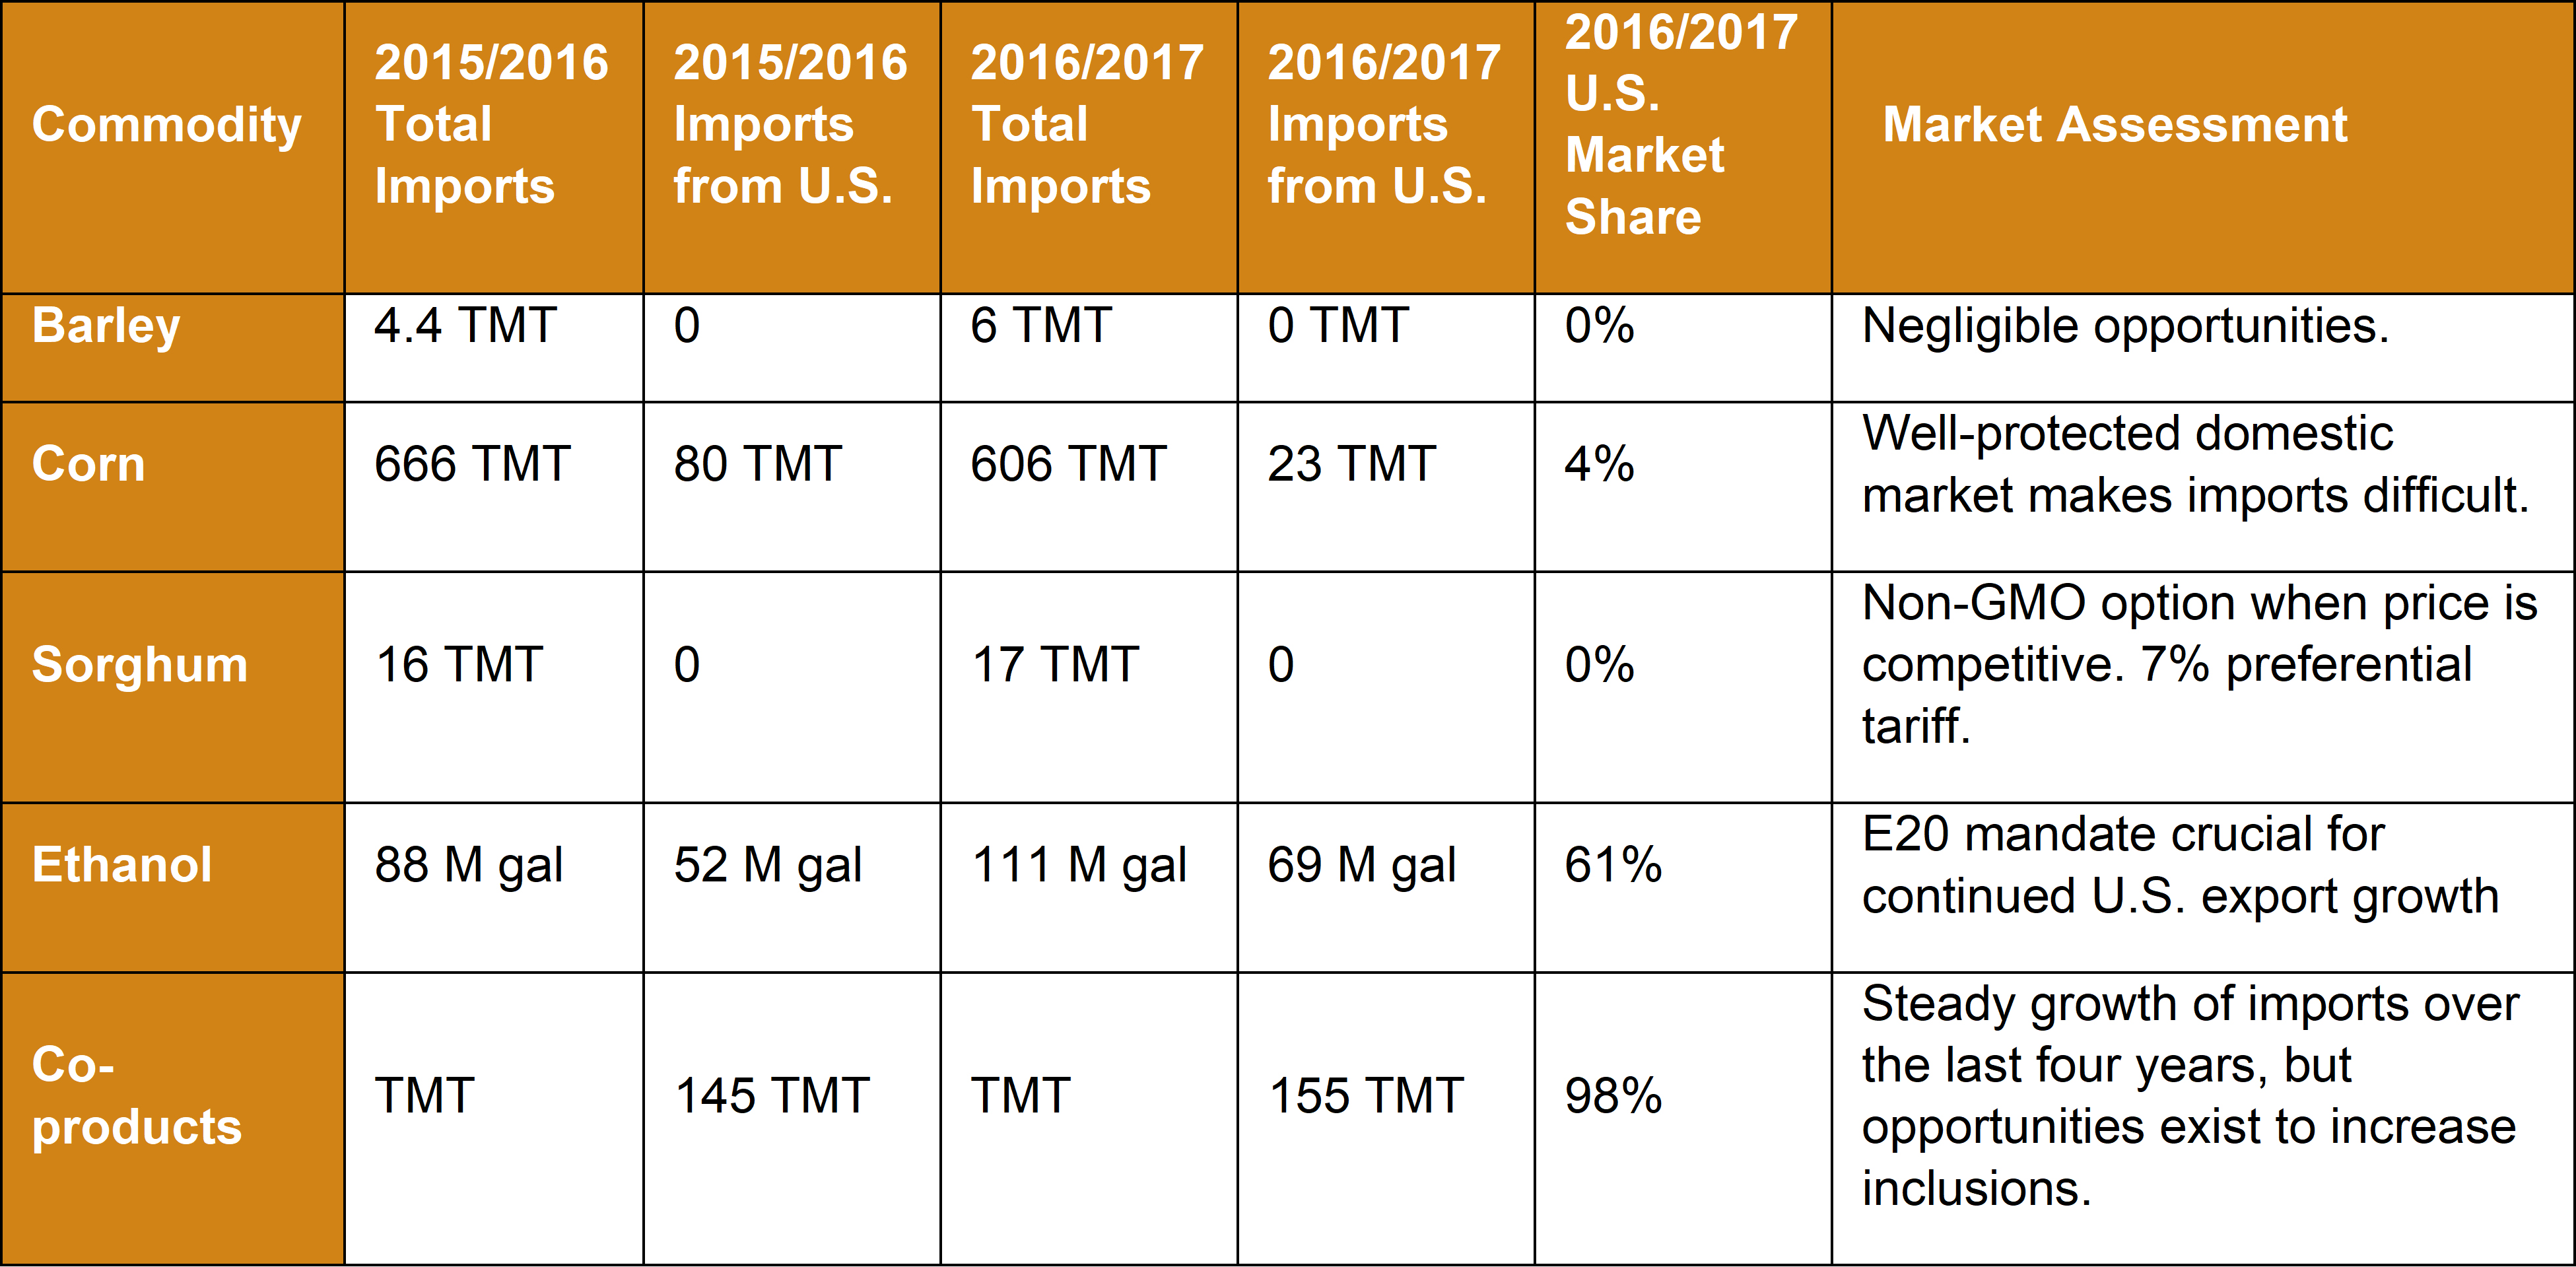 Market Snapshot 2018 - Philippines - Commodity Table